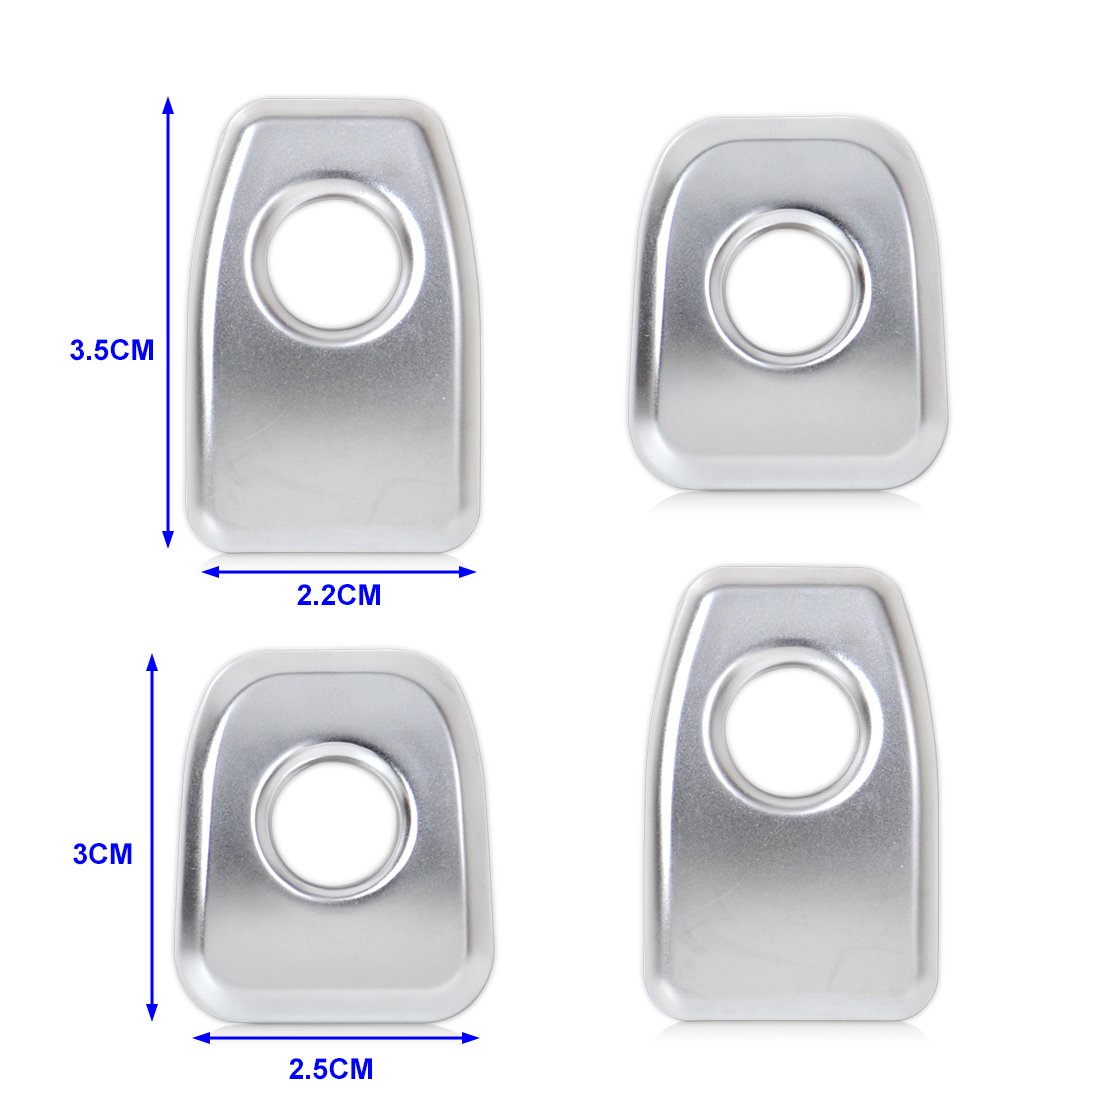 4xmatt Door Lock Knob Grommet Ferrule Covers Trim Fit For